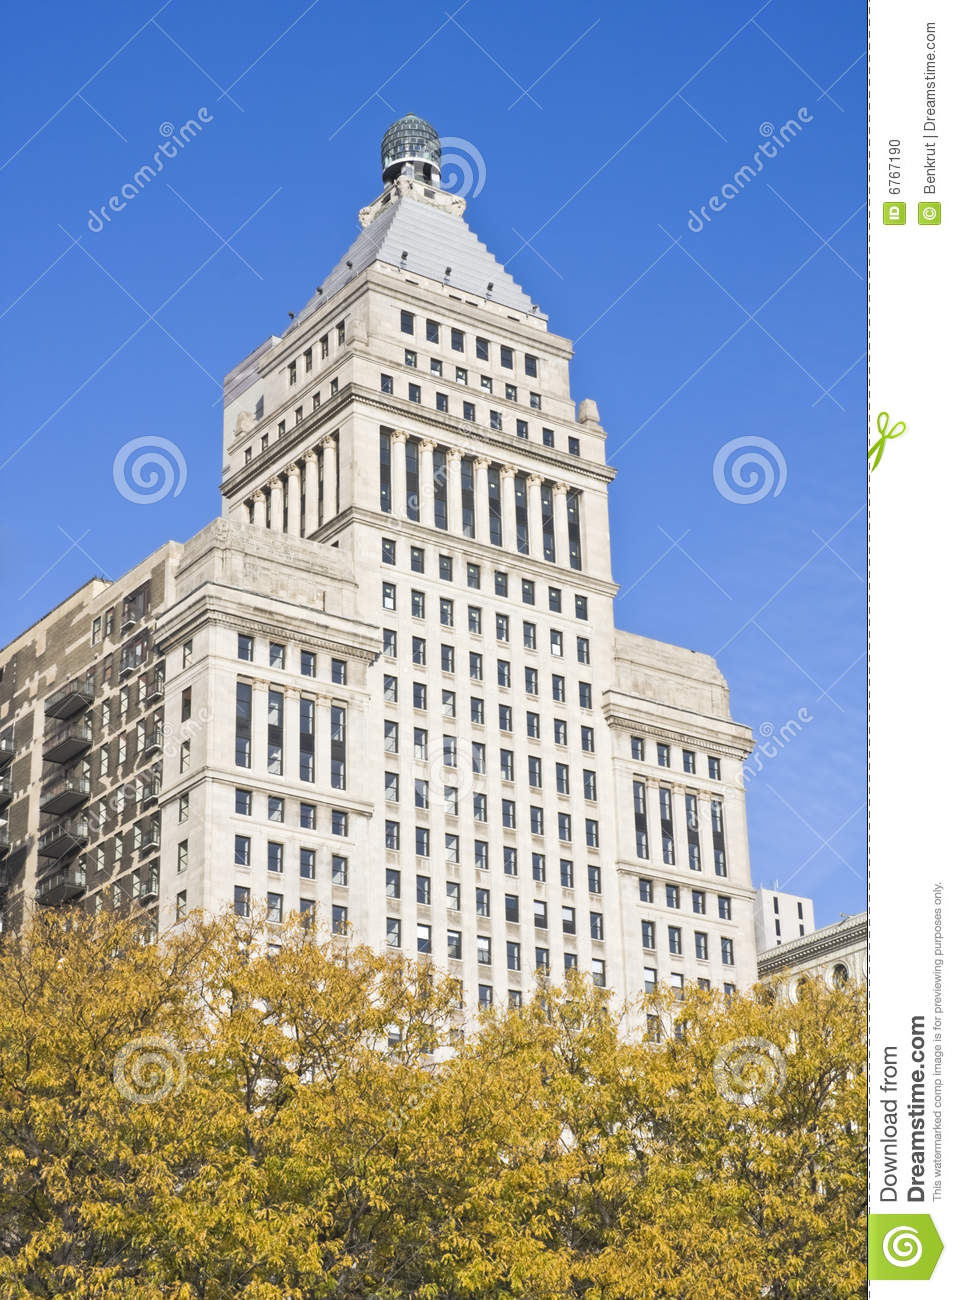 Architecture along michigan avenue stock photo image for Architectural concepts michigan